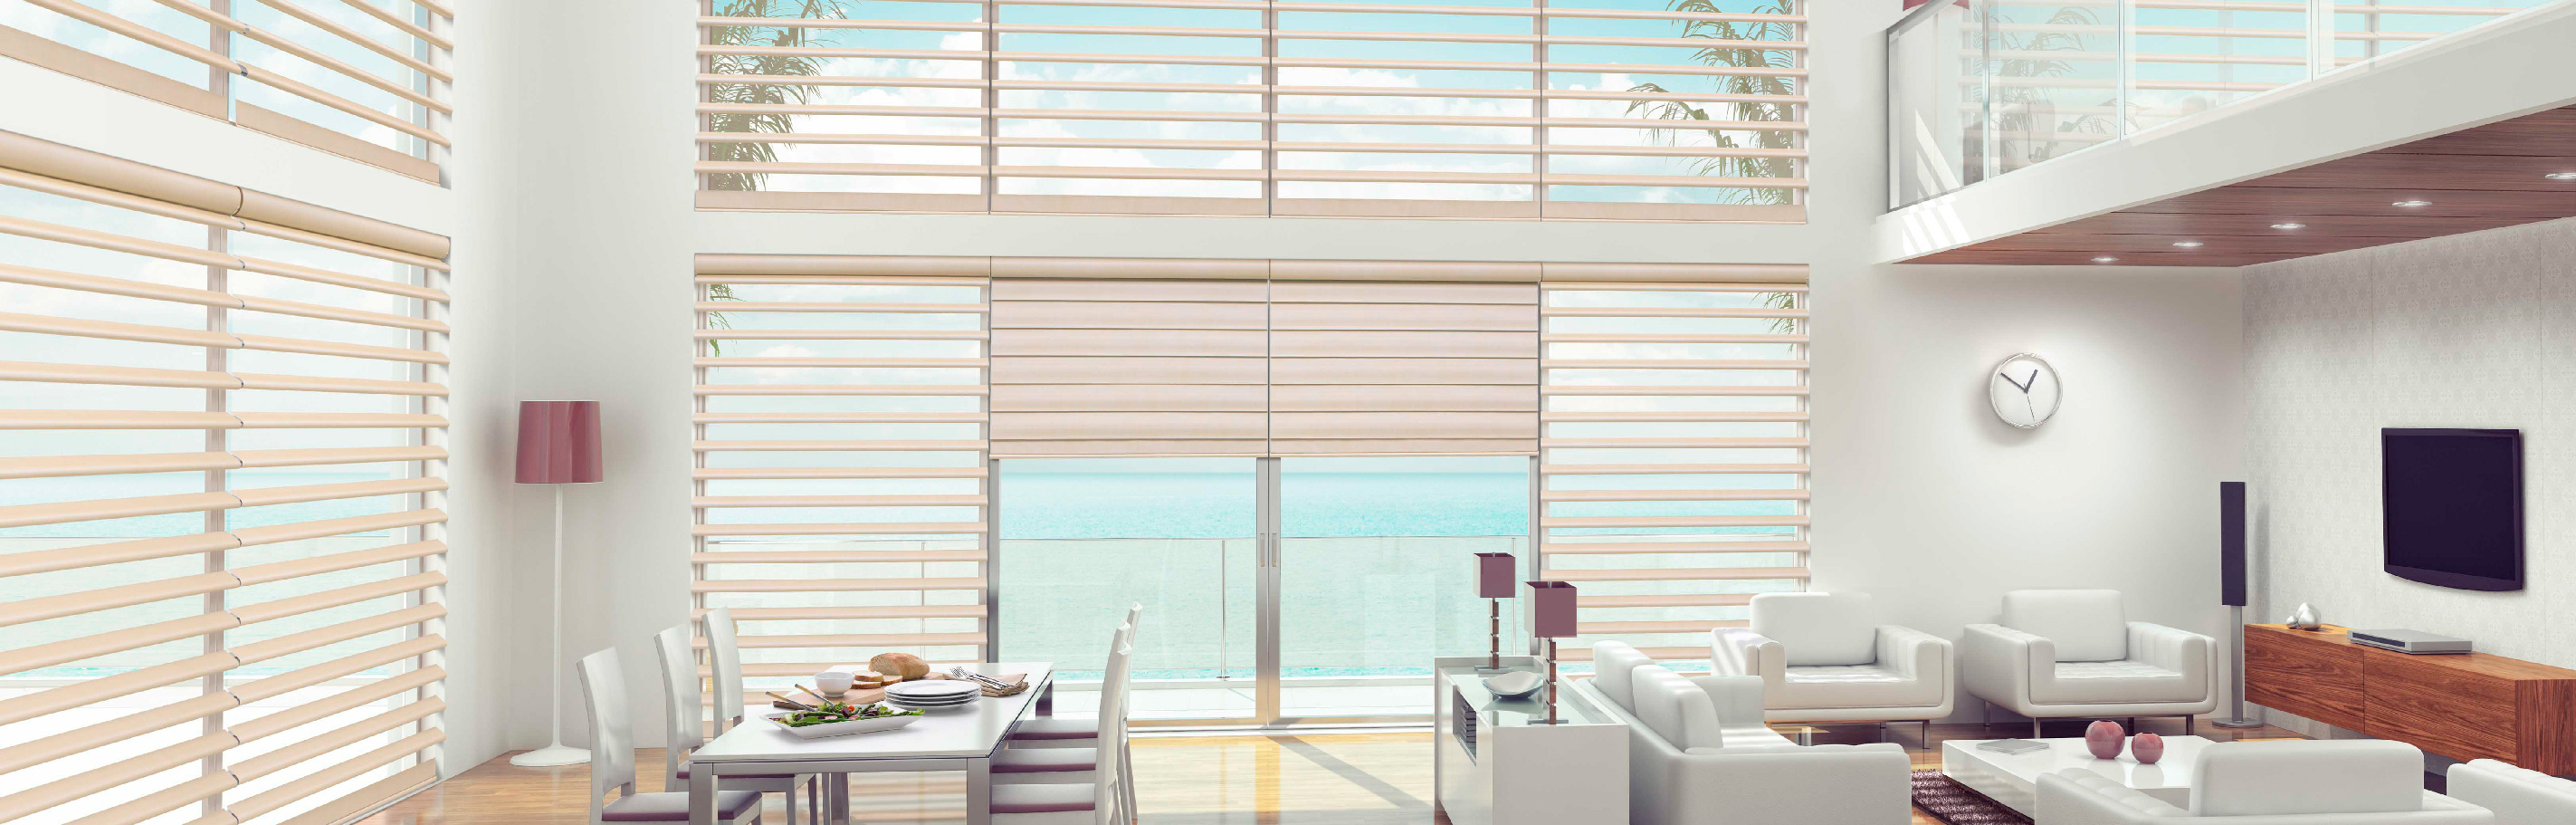 Luxaflex - Products - Softshades and Fabrics - Pirouette Shadings Bottom